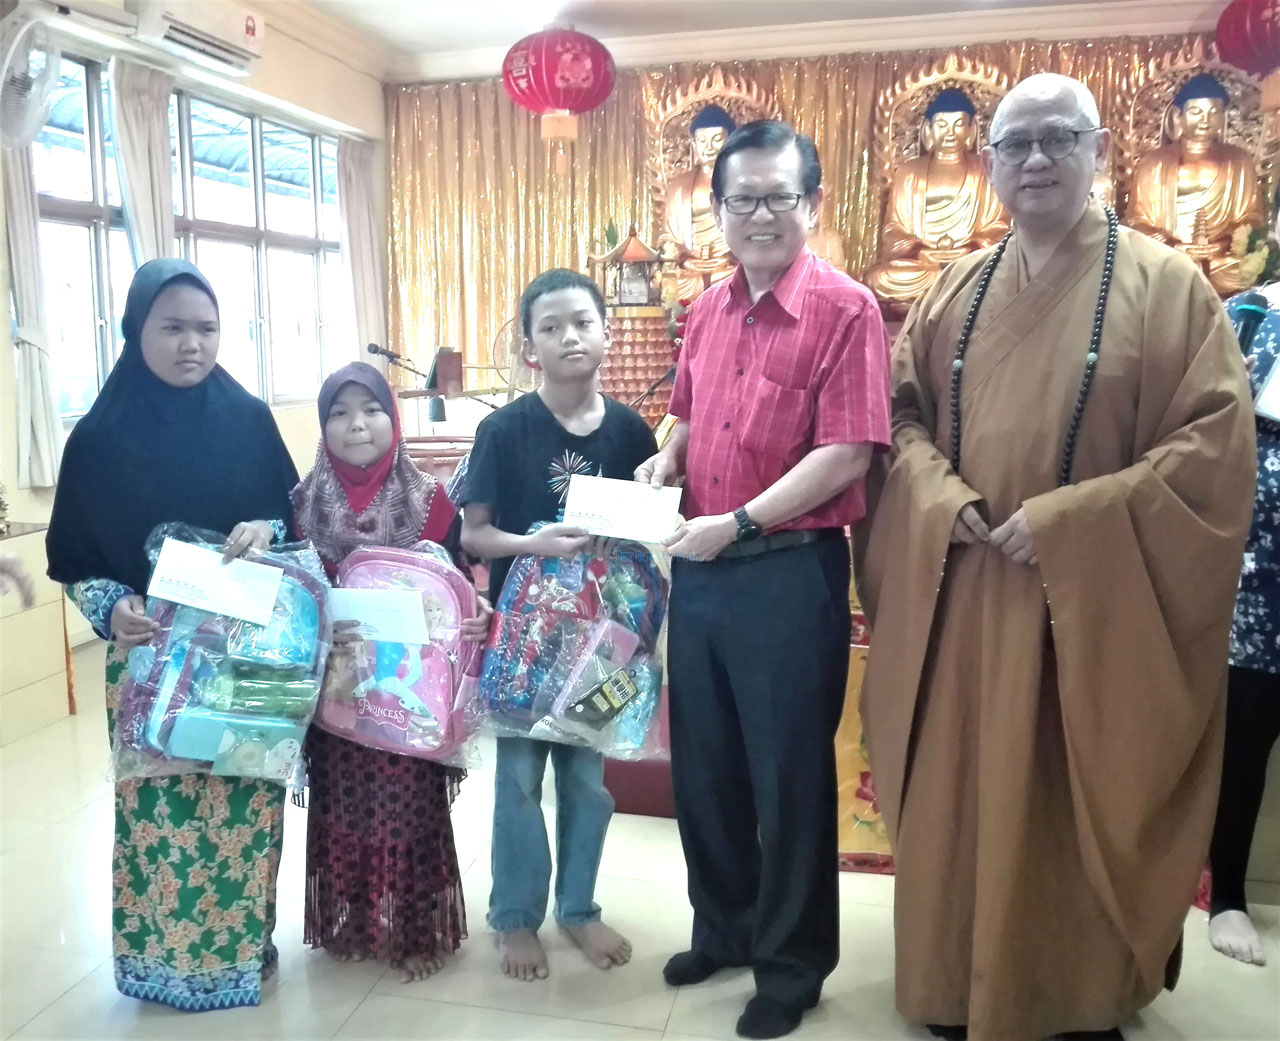 Never take unity for granted, minister reminds Sarawakians